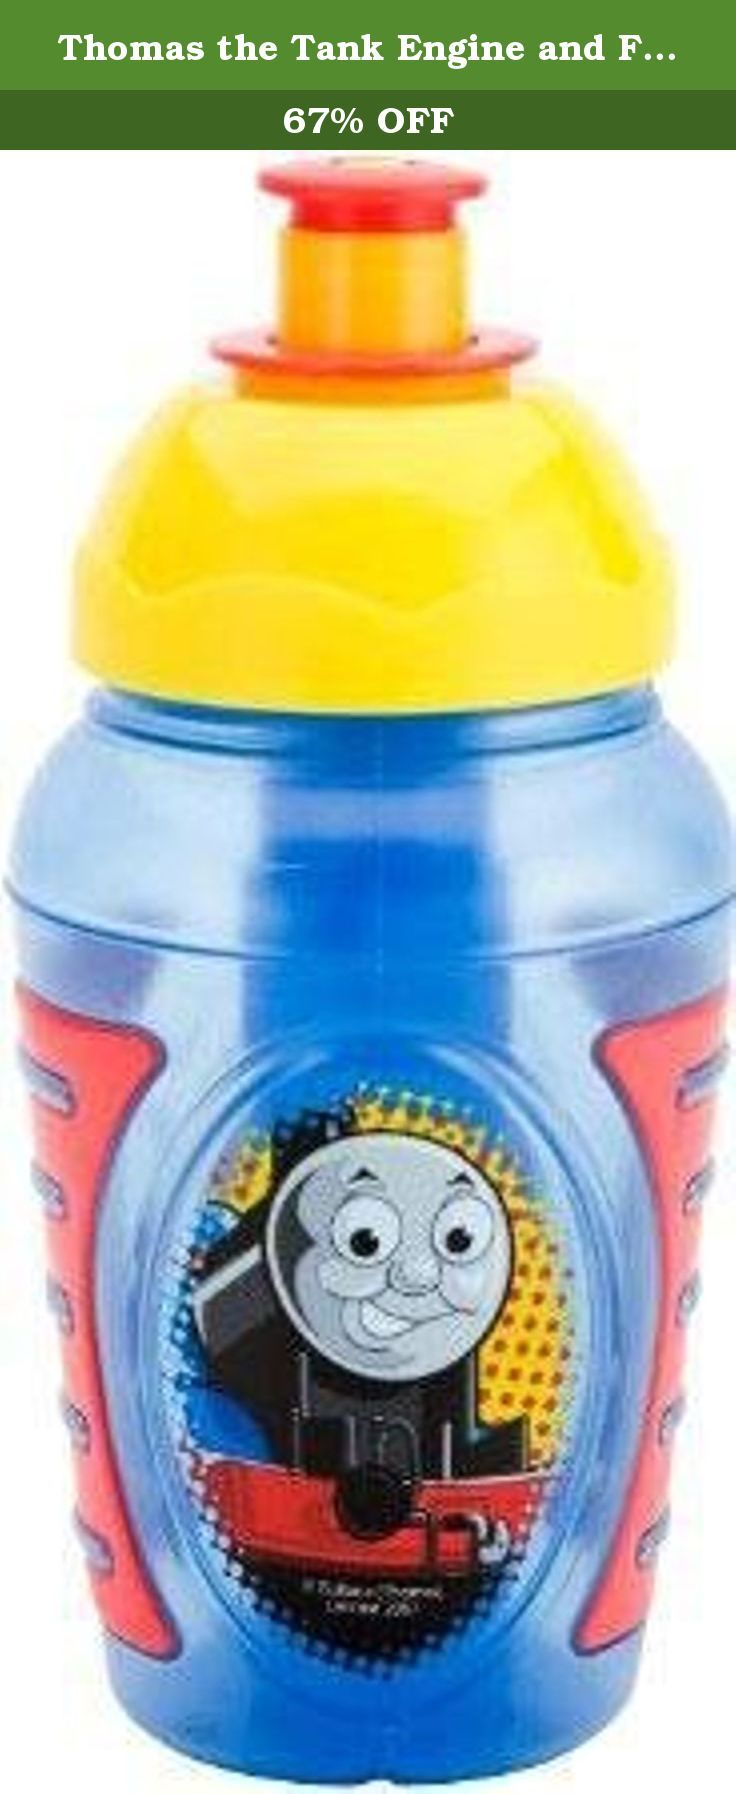 Thomas the Tank Engine and Friends EZ-Freeze Grip Sports Bottle. Thomas The Tank Engine & Friends EZ-Freeze Grip Sports Bottle by Zak!.